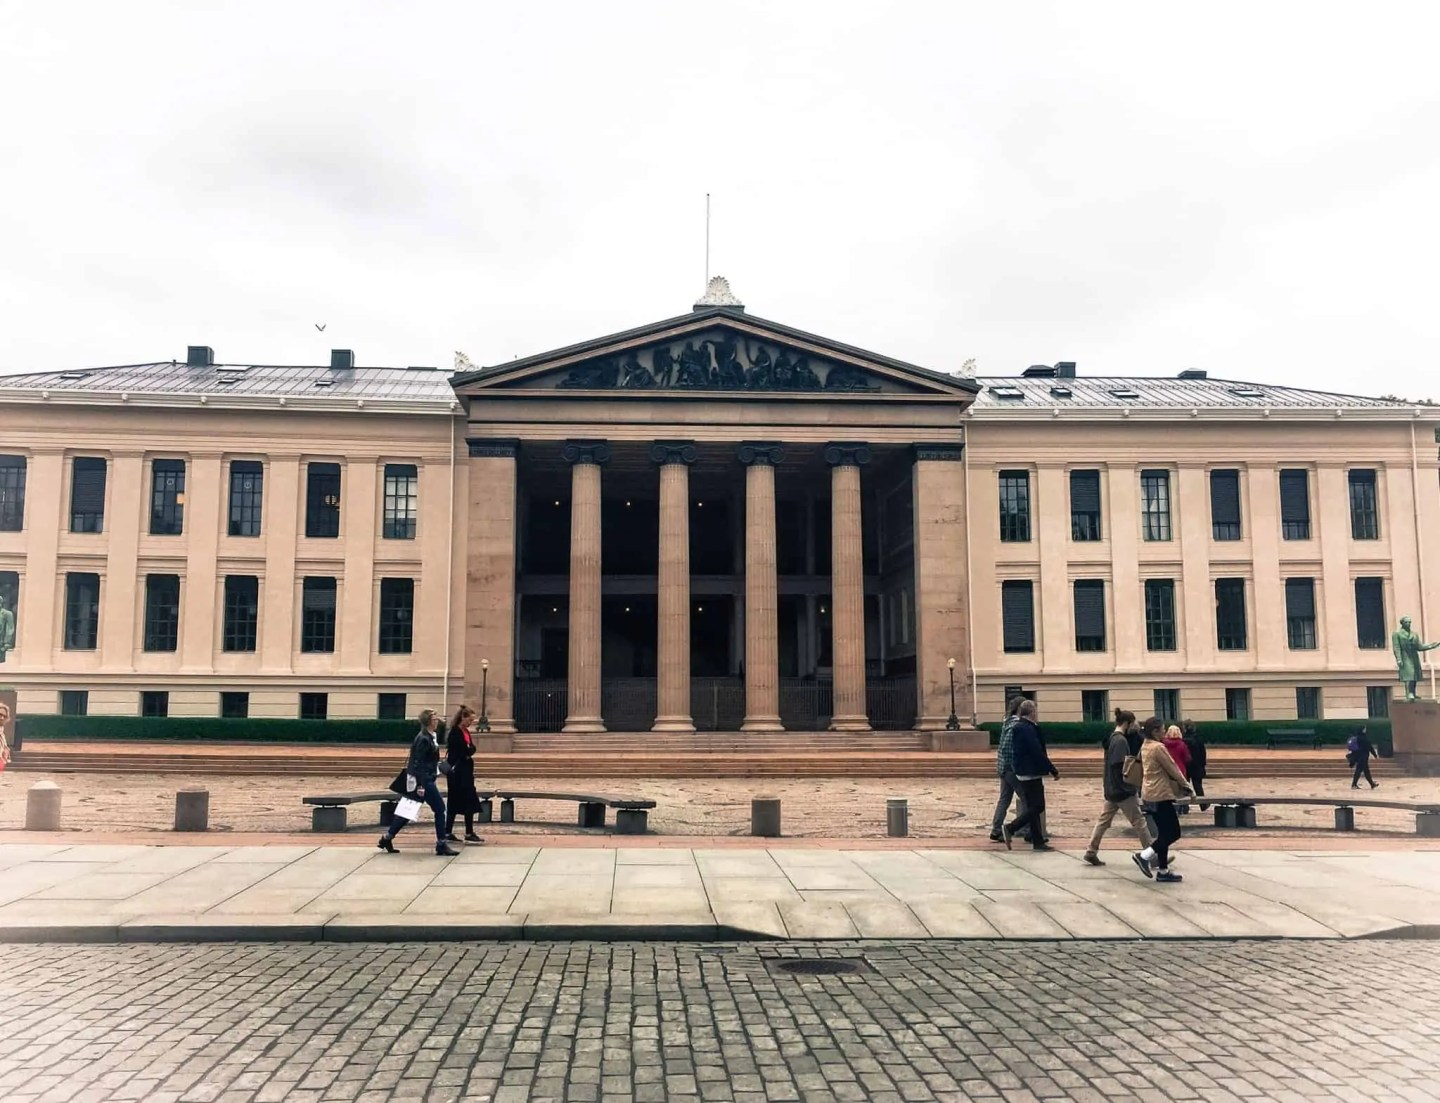 best time to visit Oslo, things to do in Oslo, free things to do in Oslo, fun things to do in Oslo, Oslo in spring, Oslo University, Karl Johan street